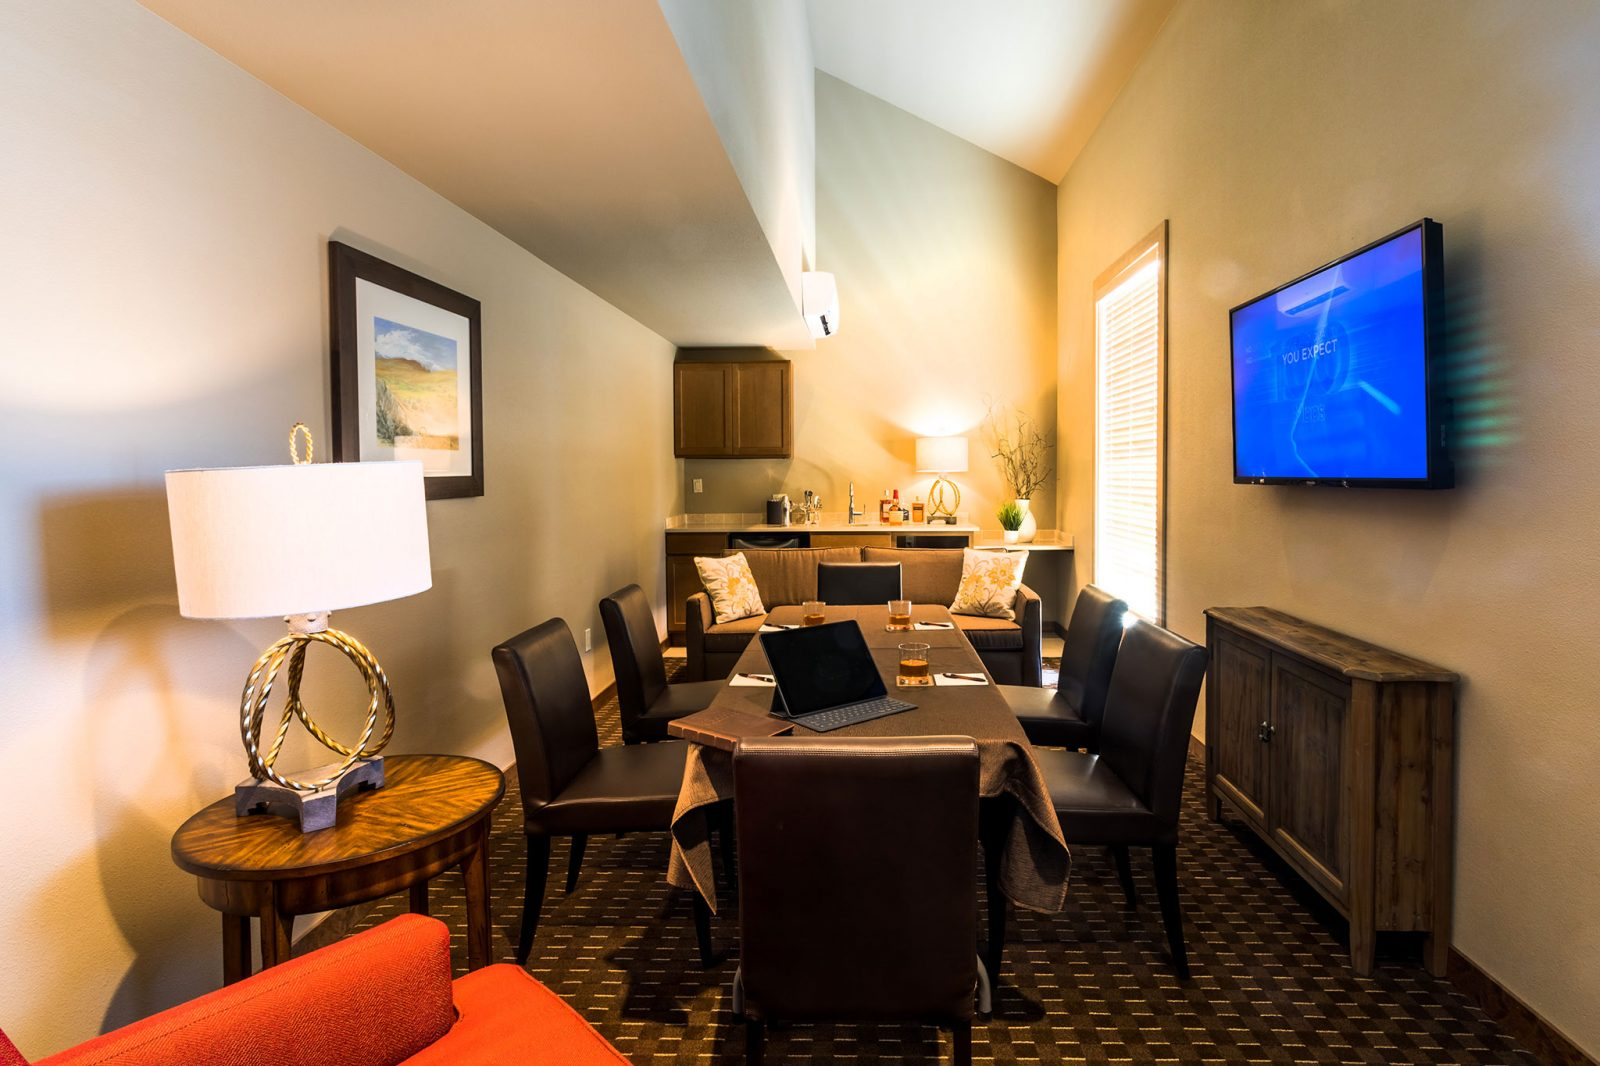 We have media rooms designed for your new media needs